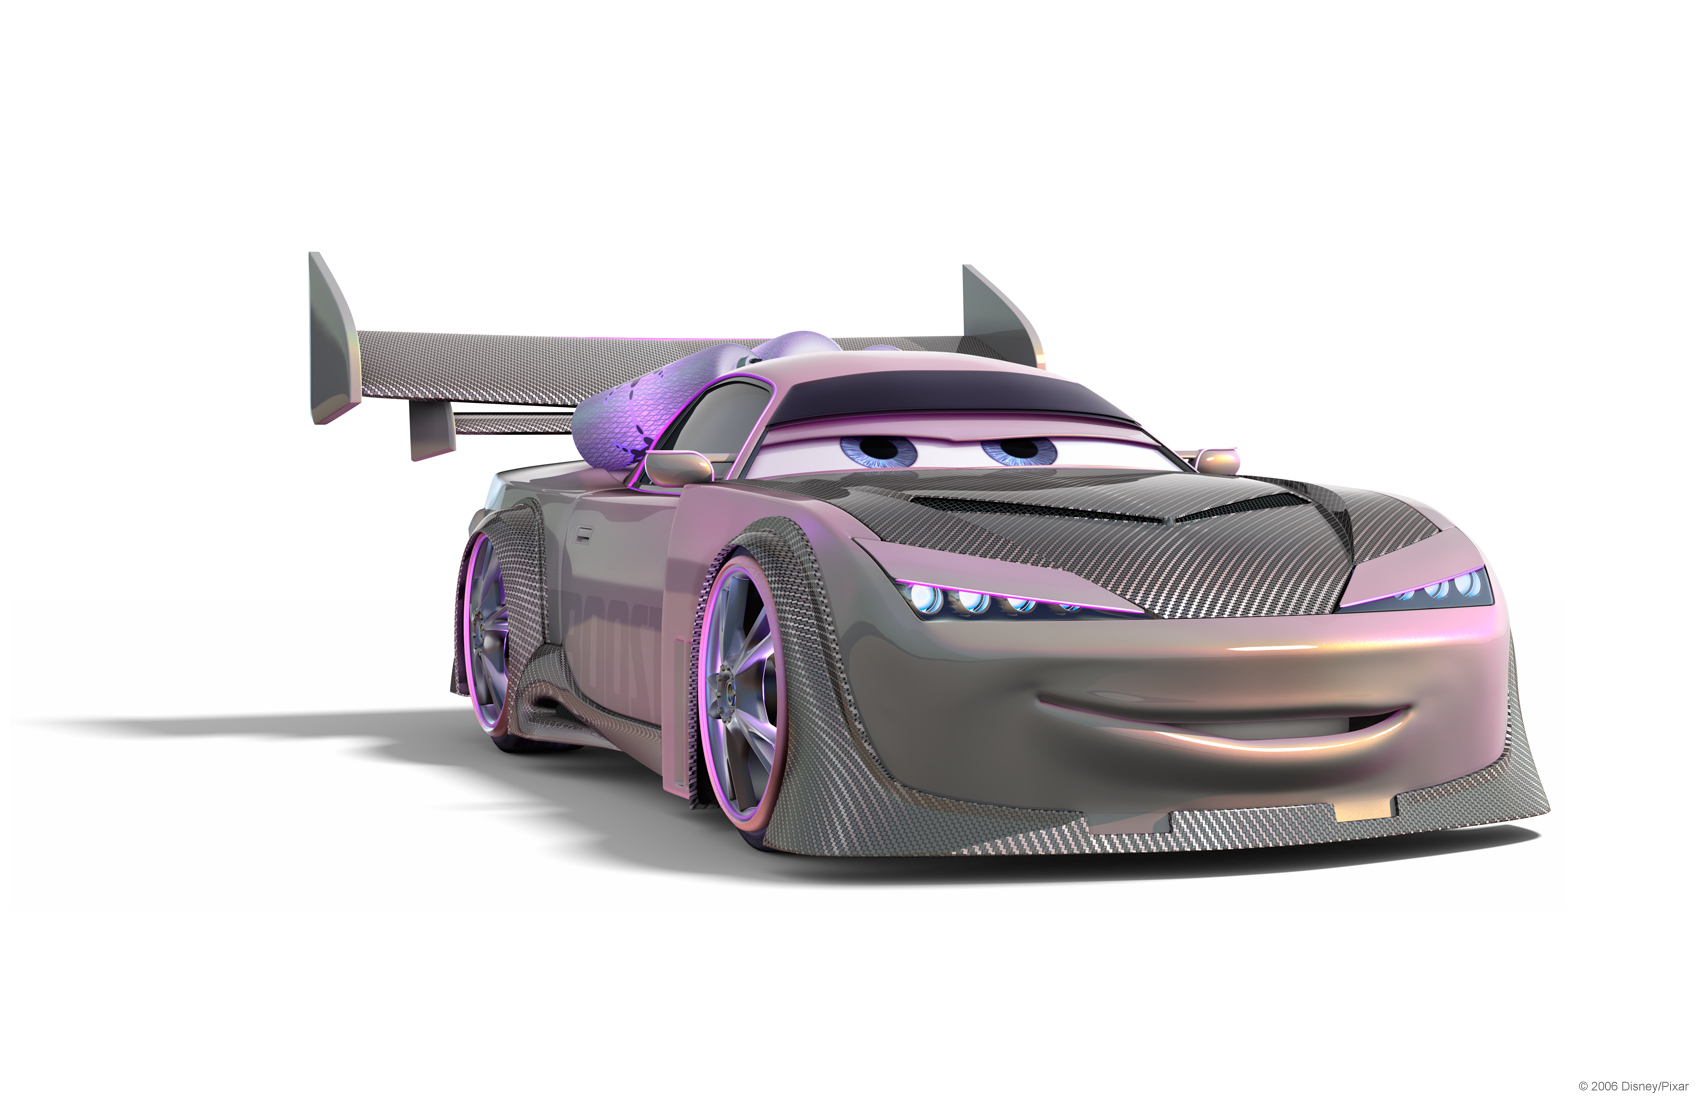 Don Jackson Mitsubishi >> Boost | Pixar Cars Wiki | FANDOM powered by Wikia